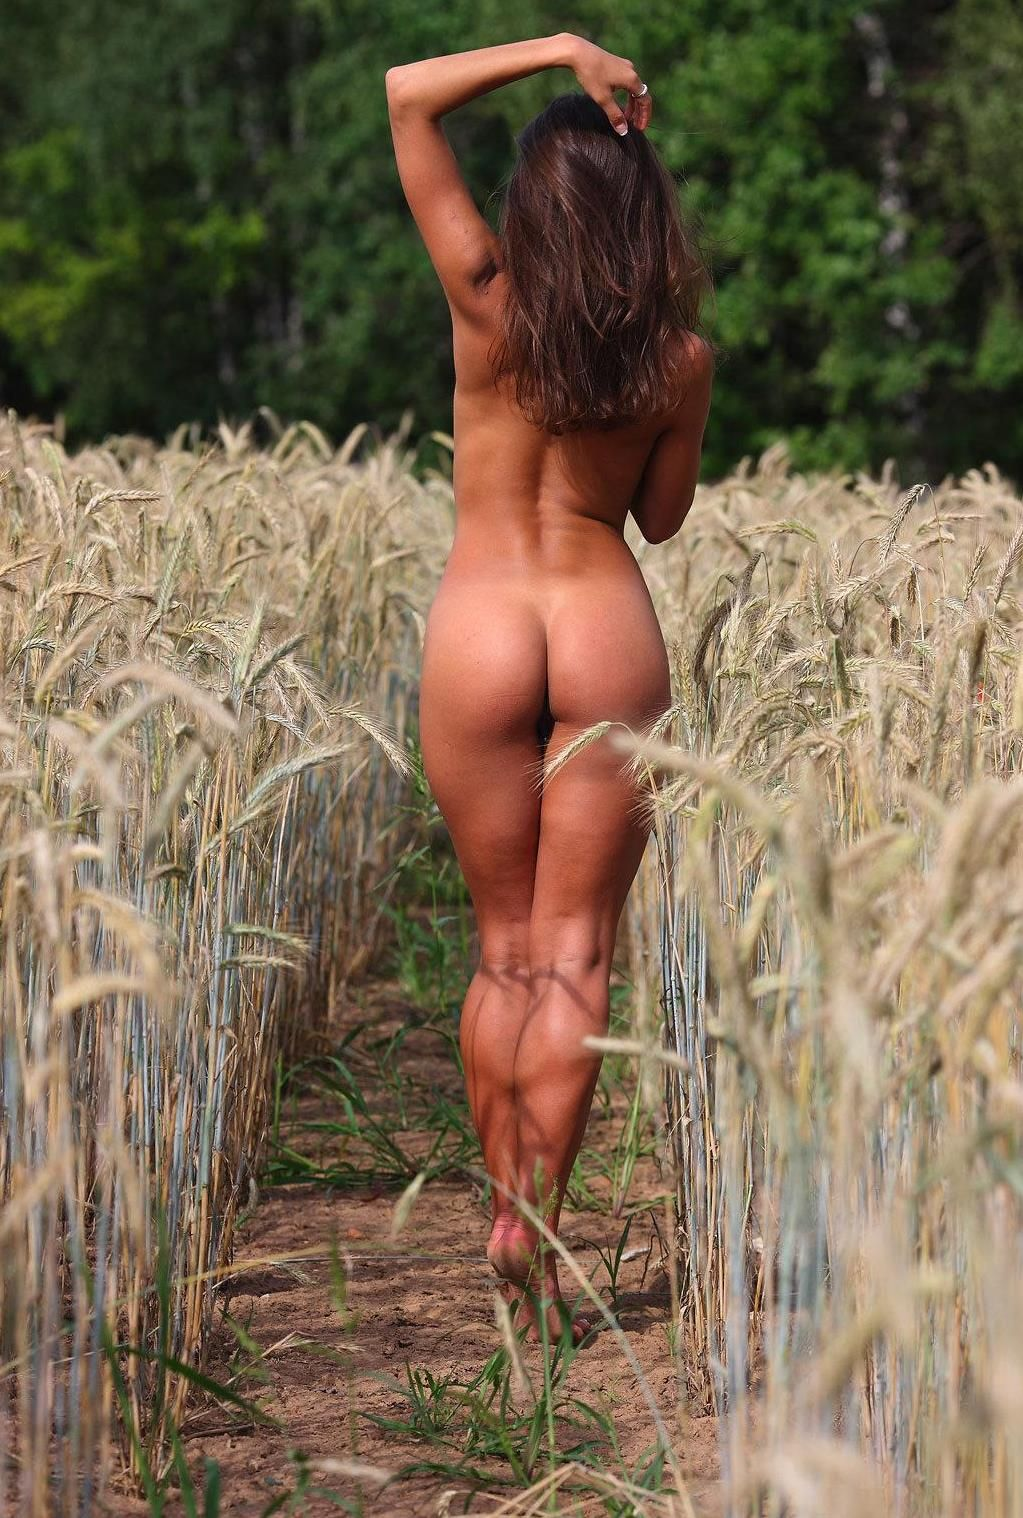 Your place Nude women in corn field antimated for